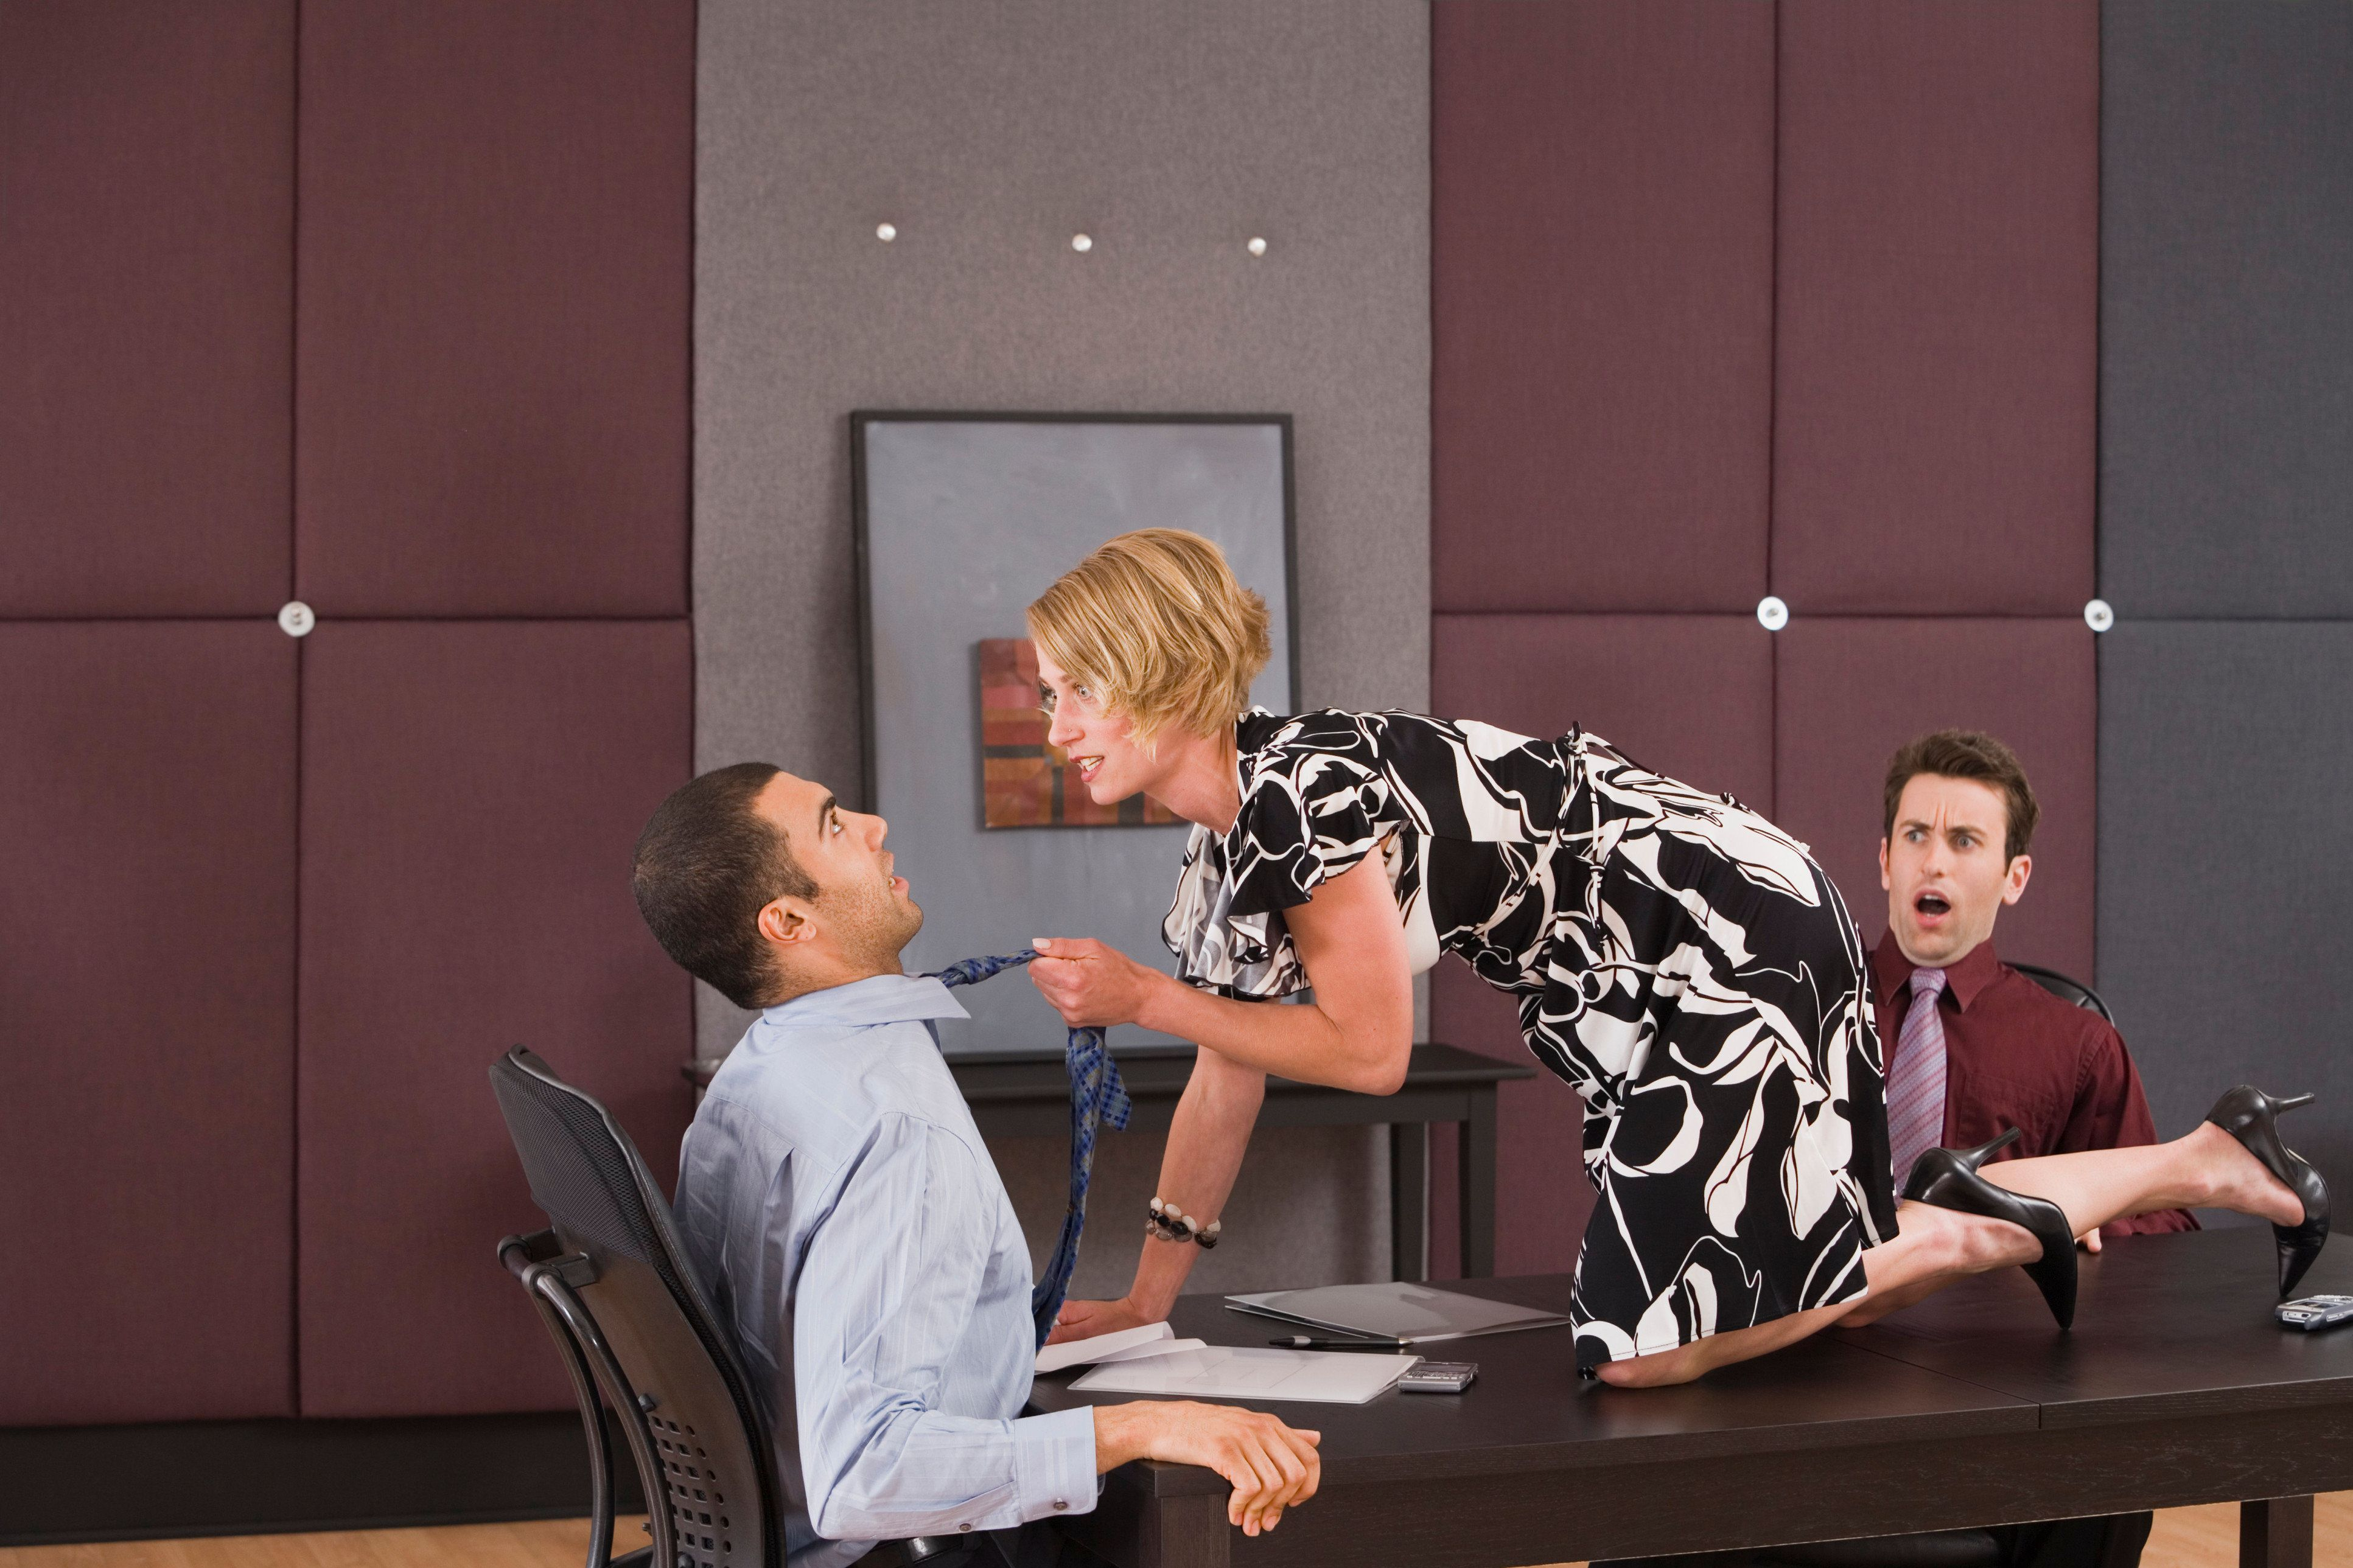 Male sexual harassment in the workplace